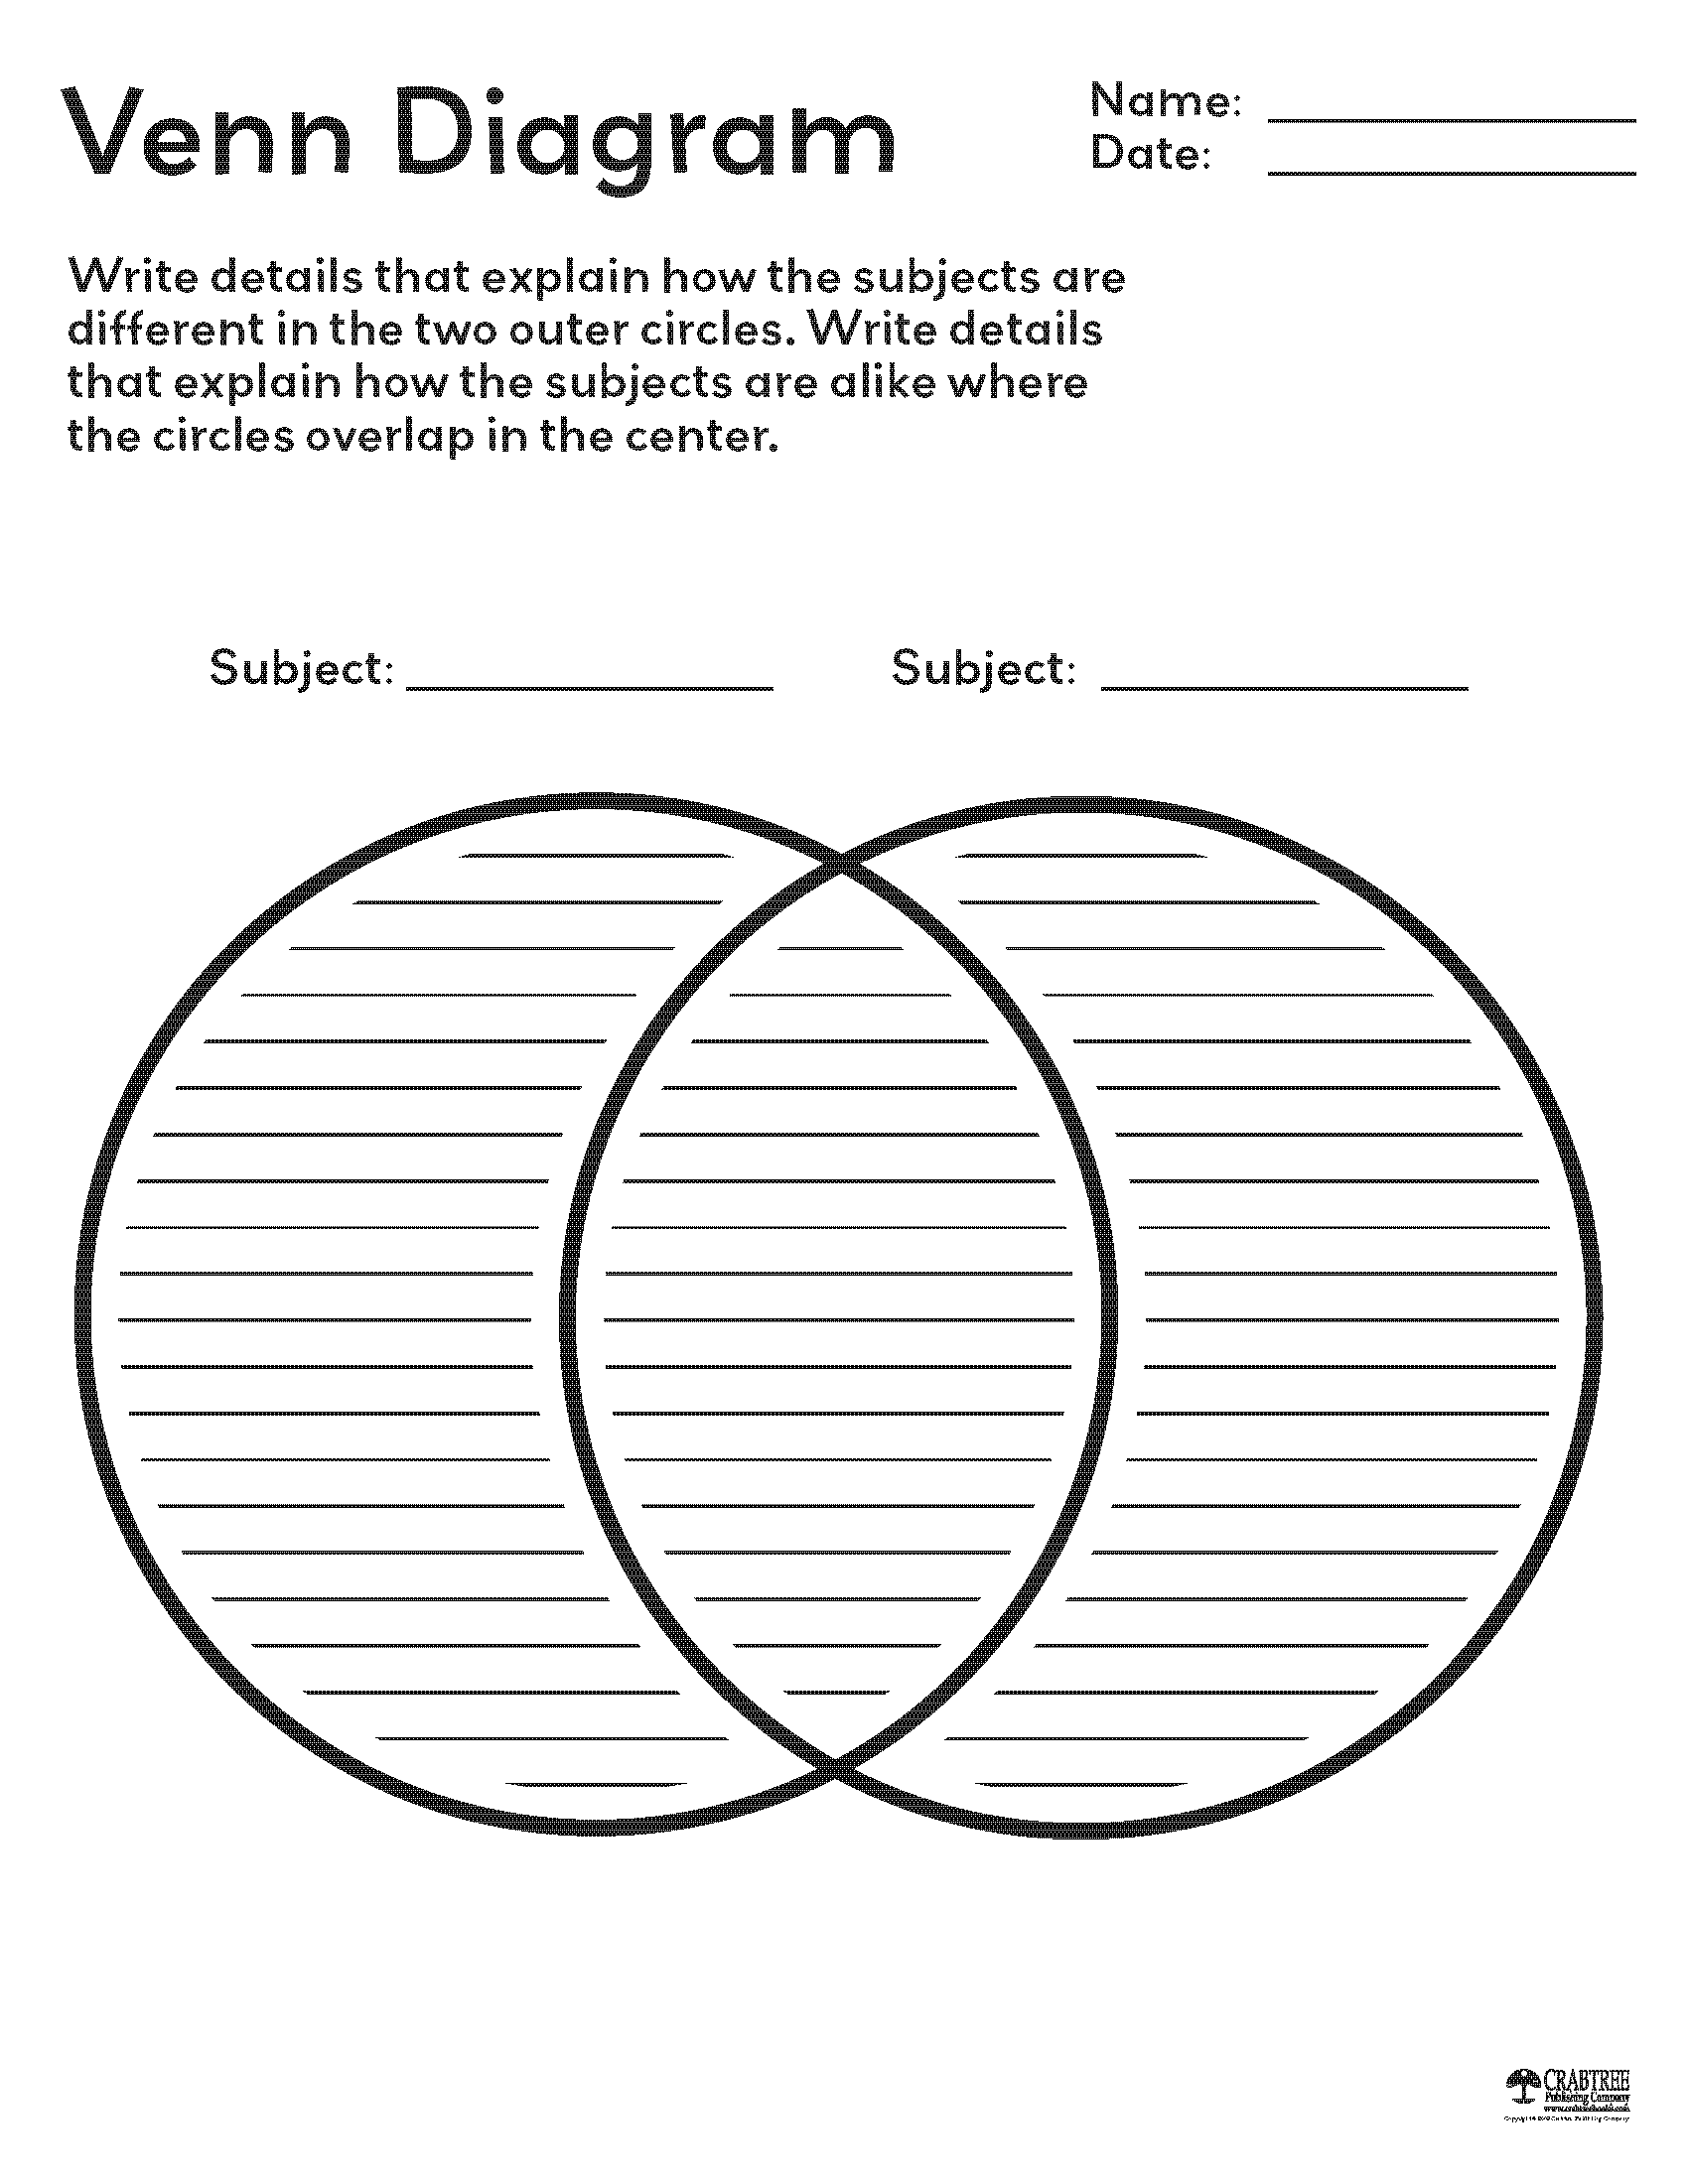 Free printable Venn Diagram from Crabtree Publishing | Educational ...